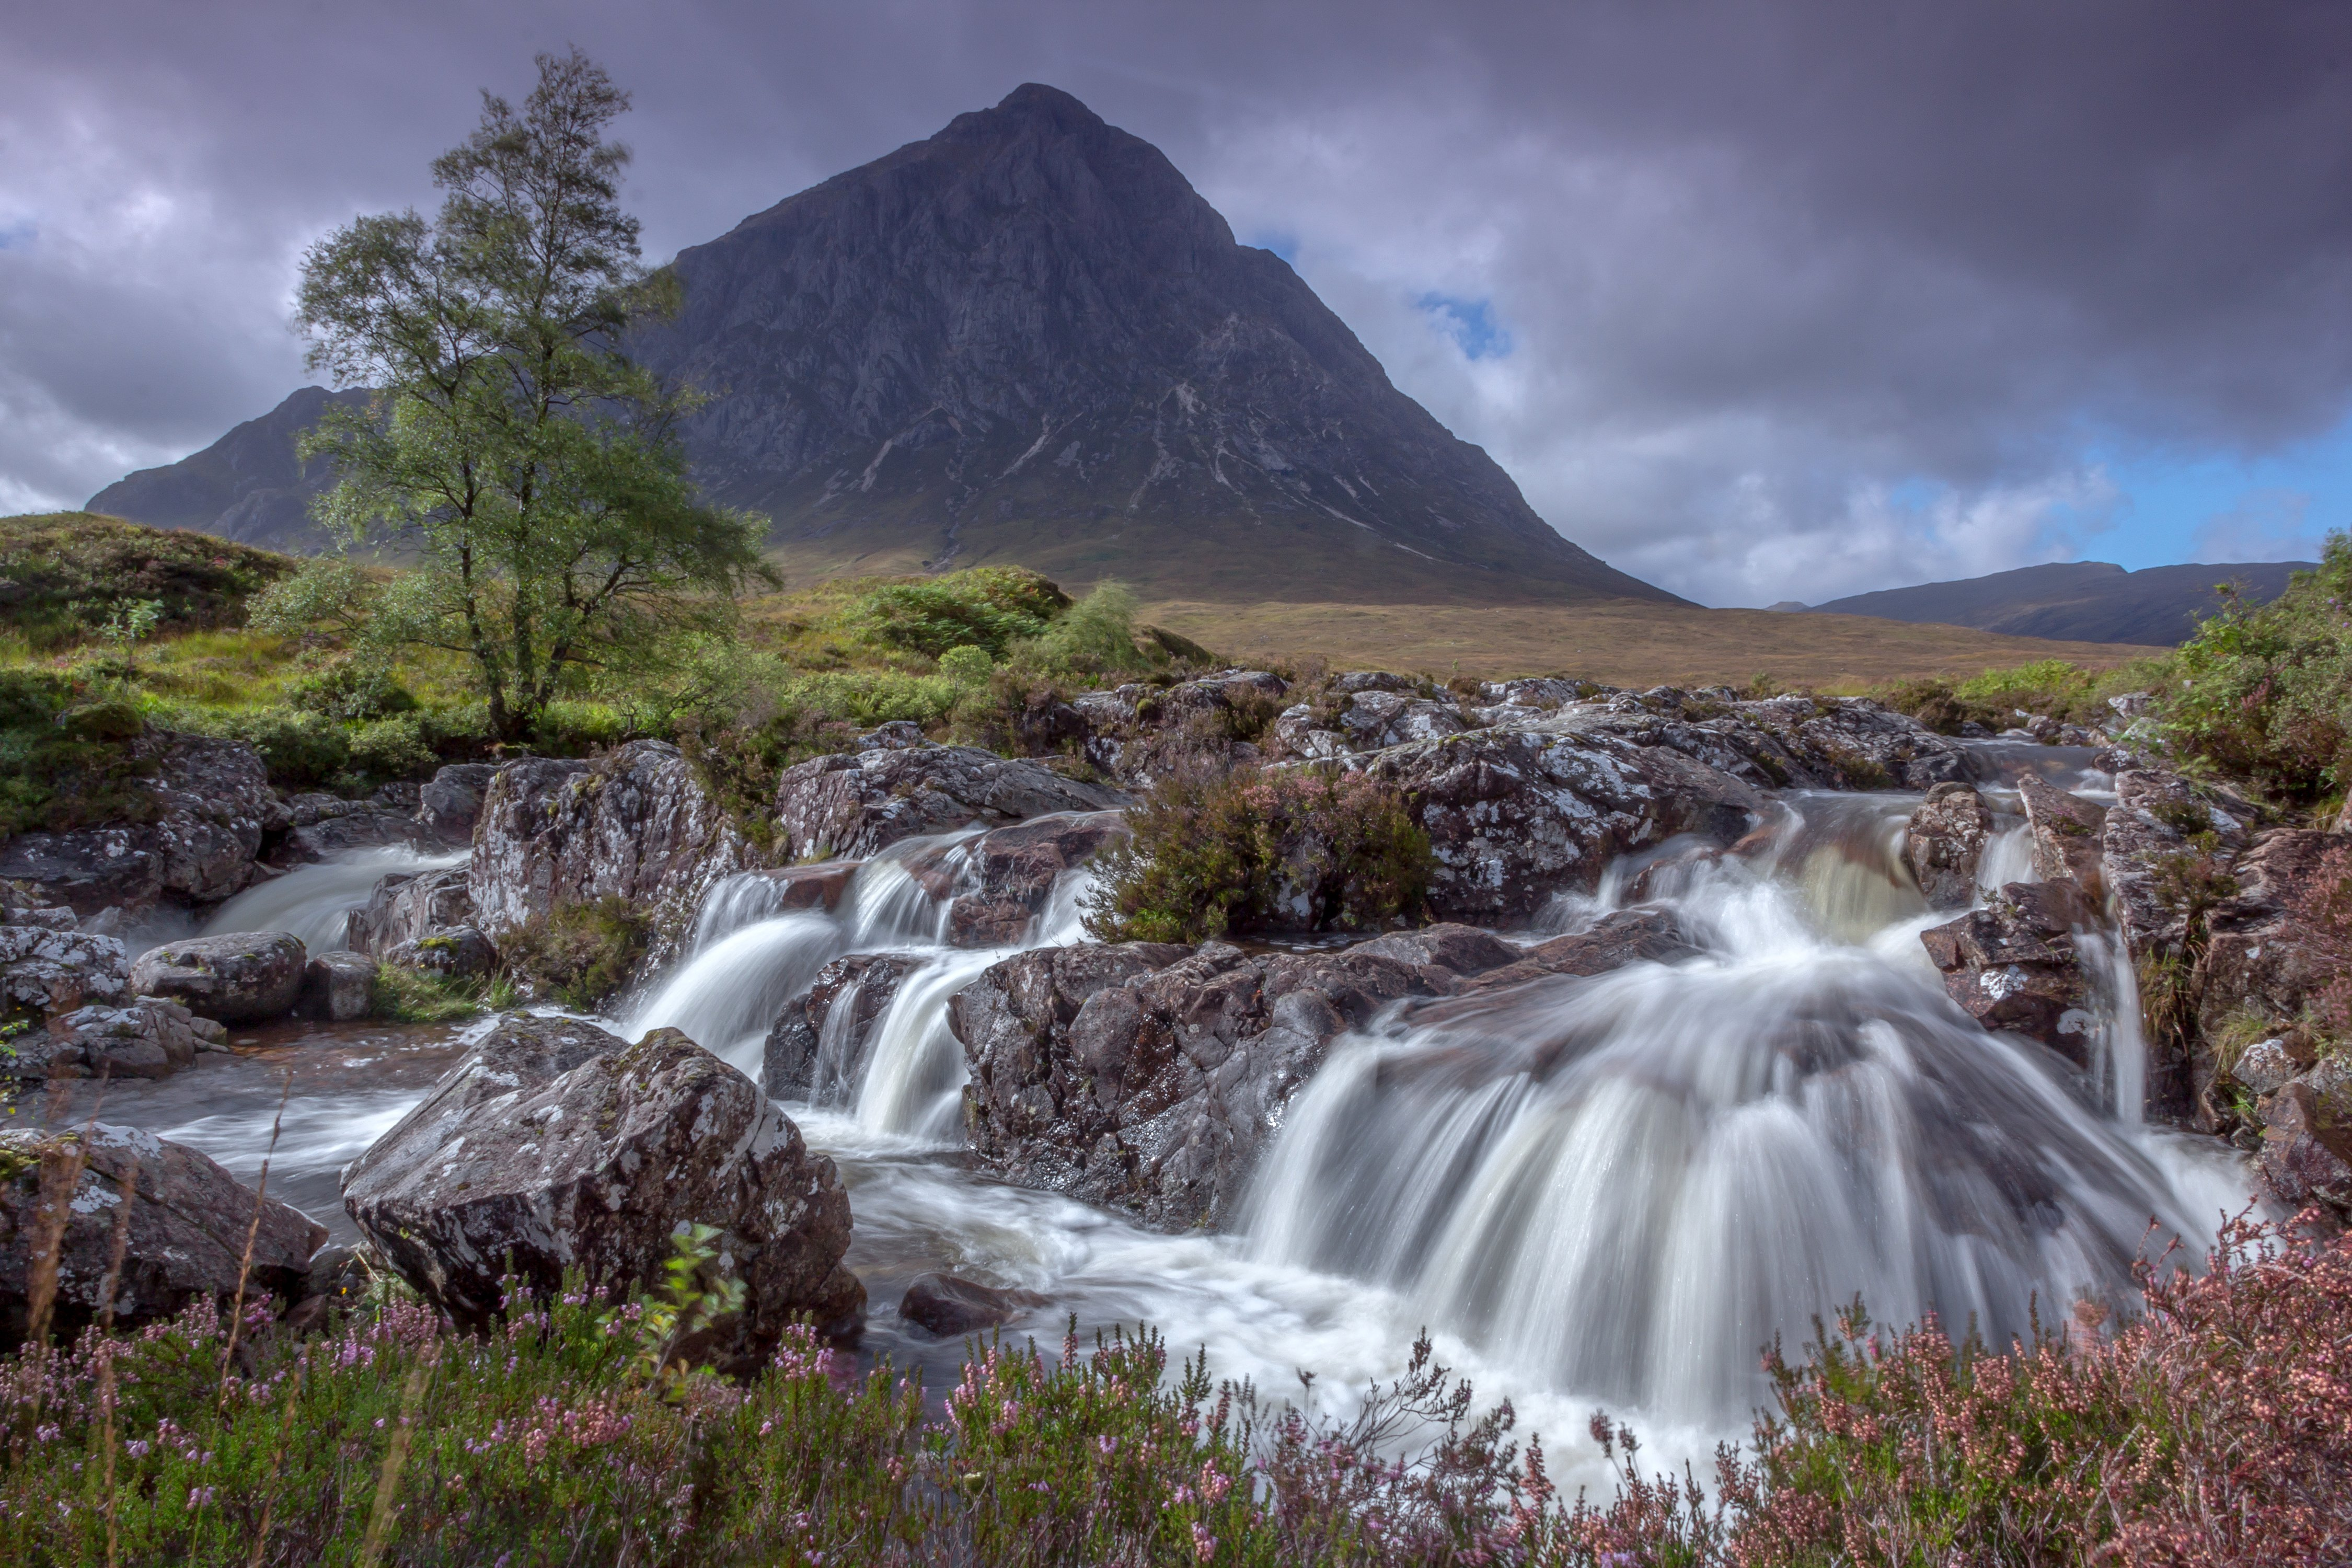 scotland natural scenery mountains - photo #2